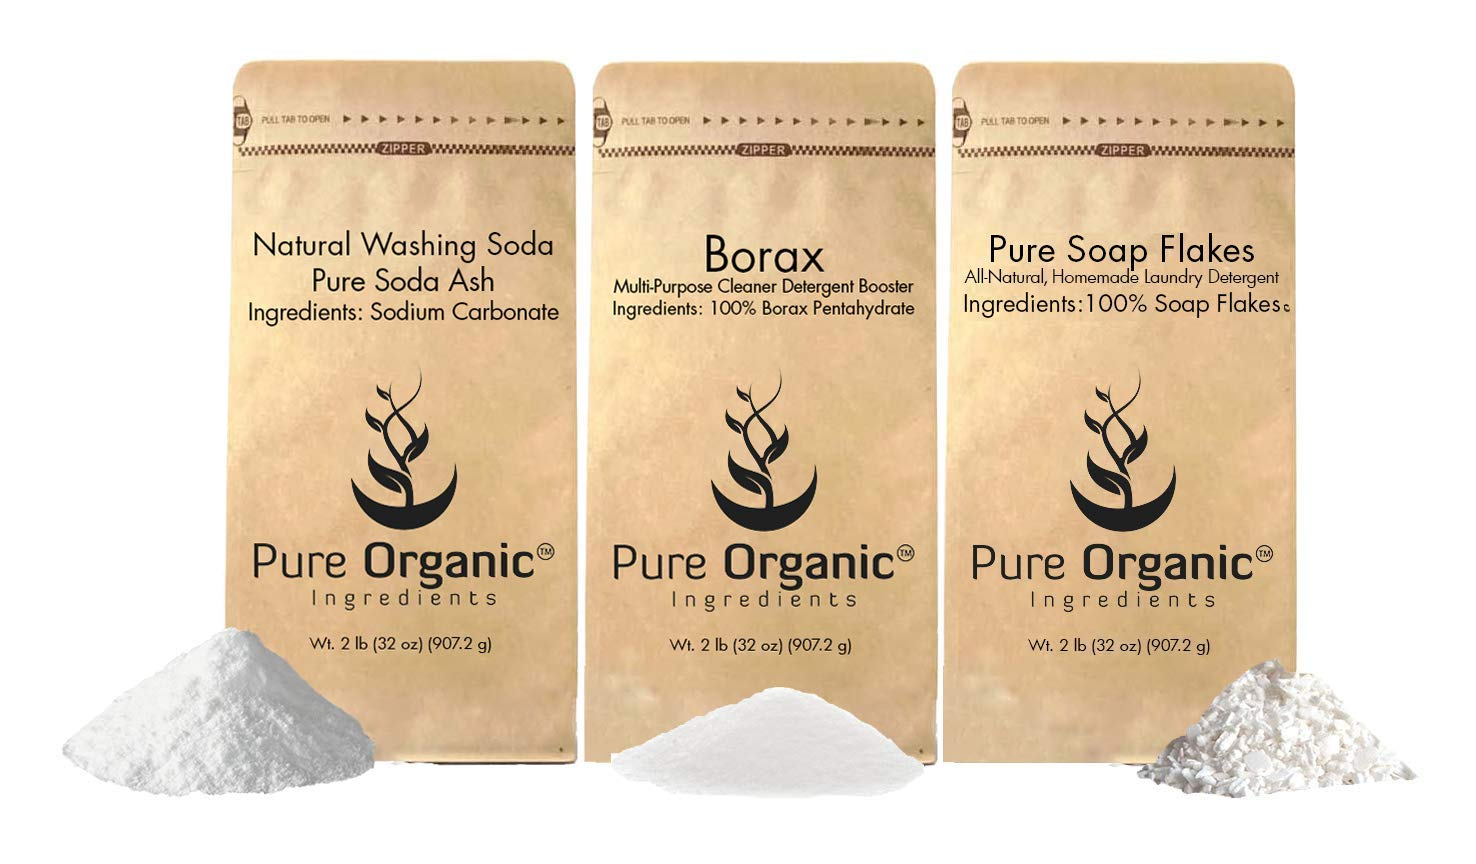 Laundry Soap Kit by Pure Organic Ingredients (2 lbs each) Borax, Natural Washing Soda, Soap Flakes. Eco-Friendly Packaging, Multi-Purpose Cleaners ...